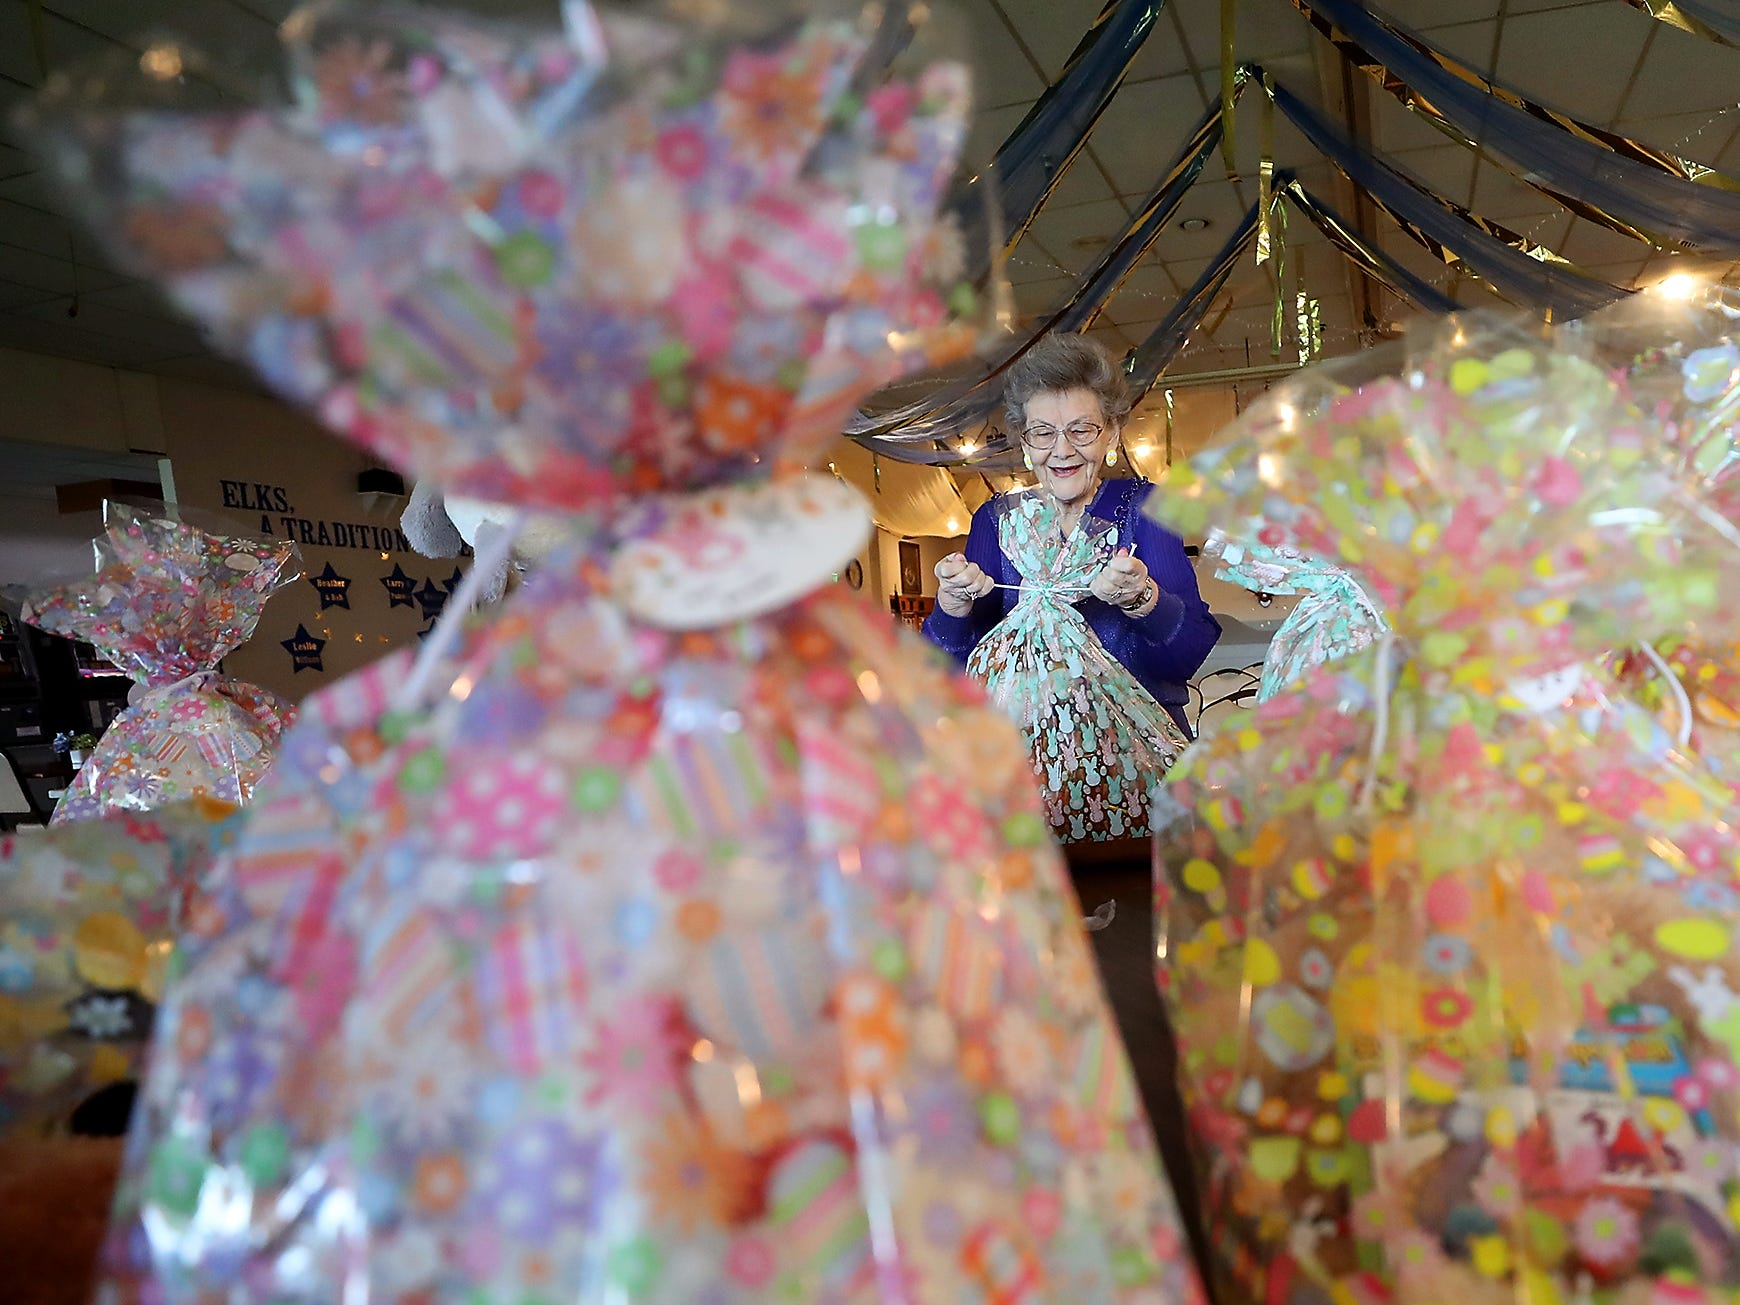 Misty Davis, chairman of the Easter Egg Hunt Committee, smiles while tying the tops of the easter basket bundles that will be prizes for those who find the golden eggs, as she and fellow Elks get baskets and eggs ready for the upcoming Easter Egg Hunt at the Elks Lodge in Bremerton on Wednesday, April 16, 2019.